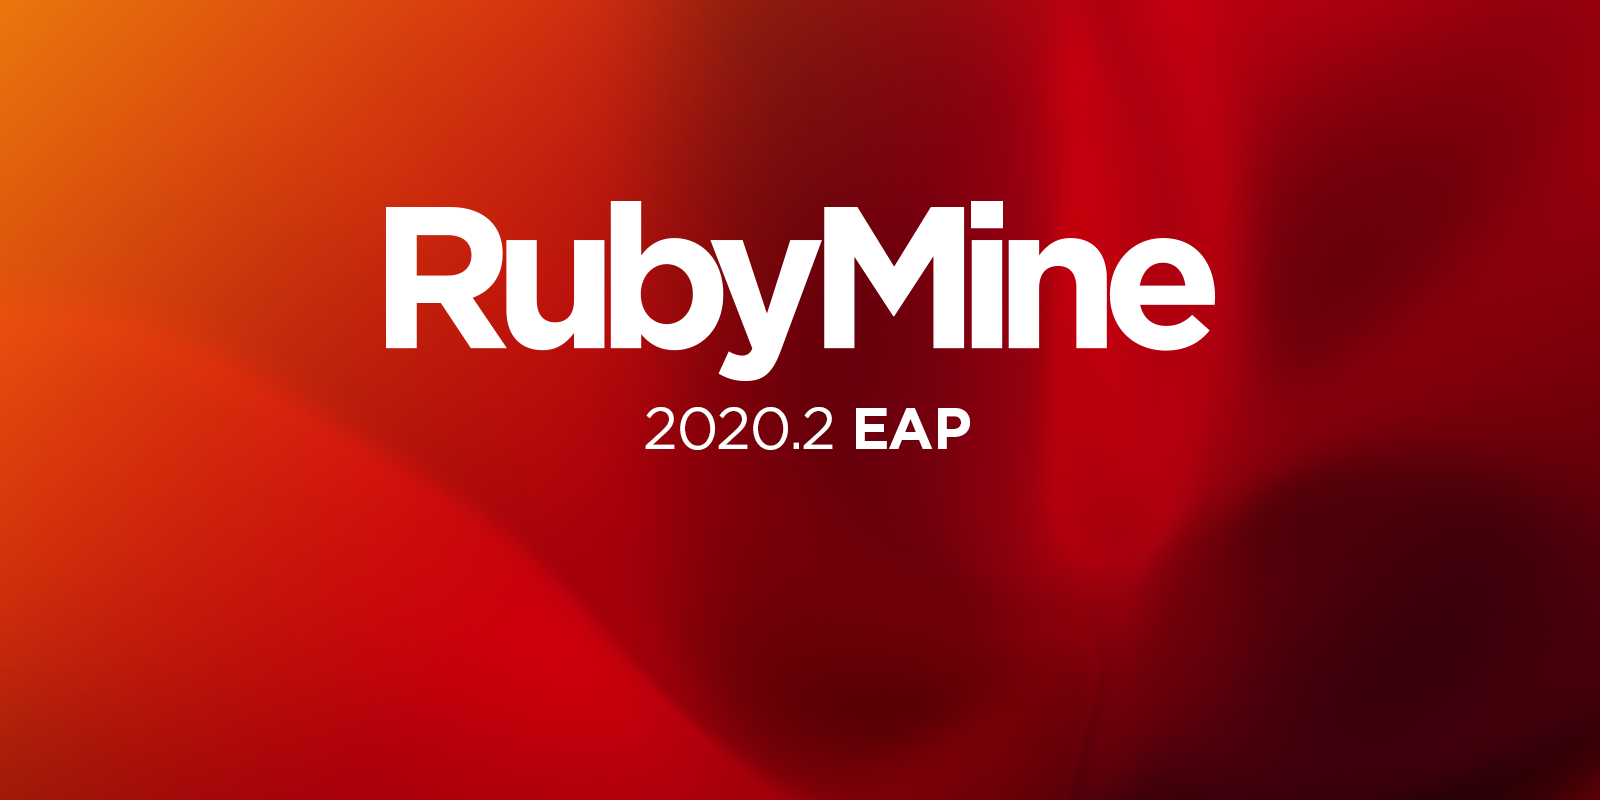 RubyMine 2020.2 EAP is Open!